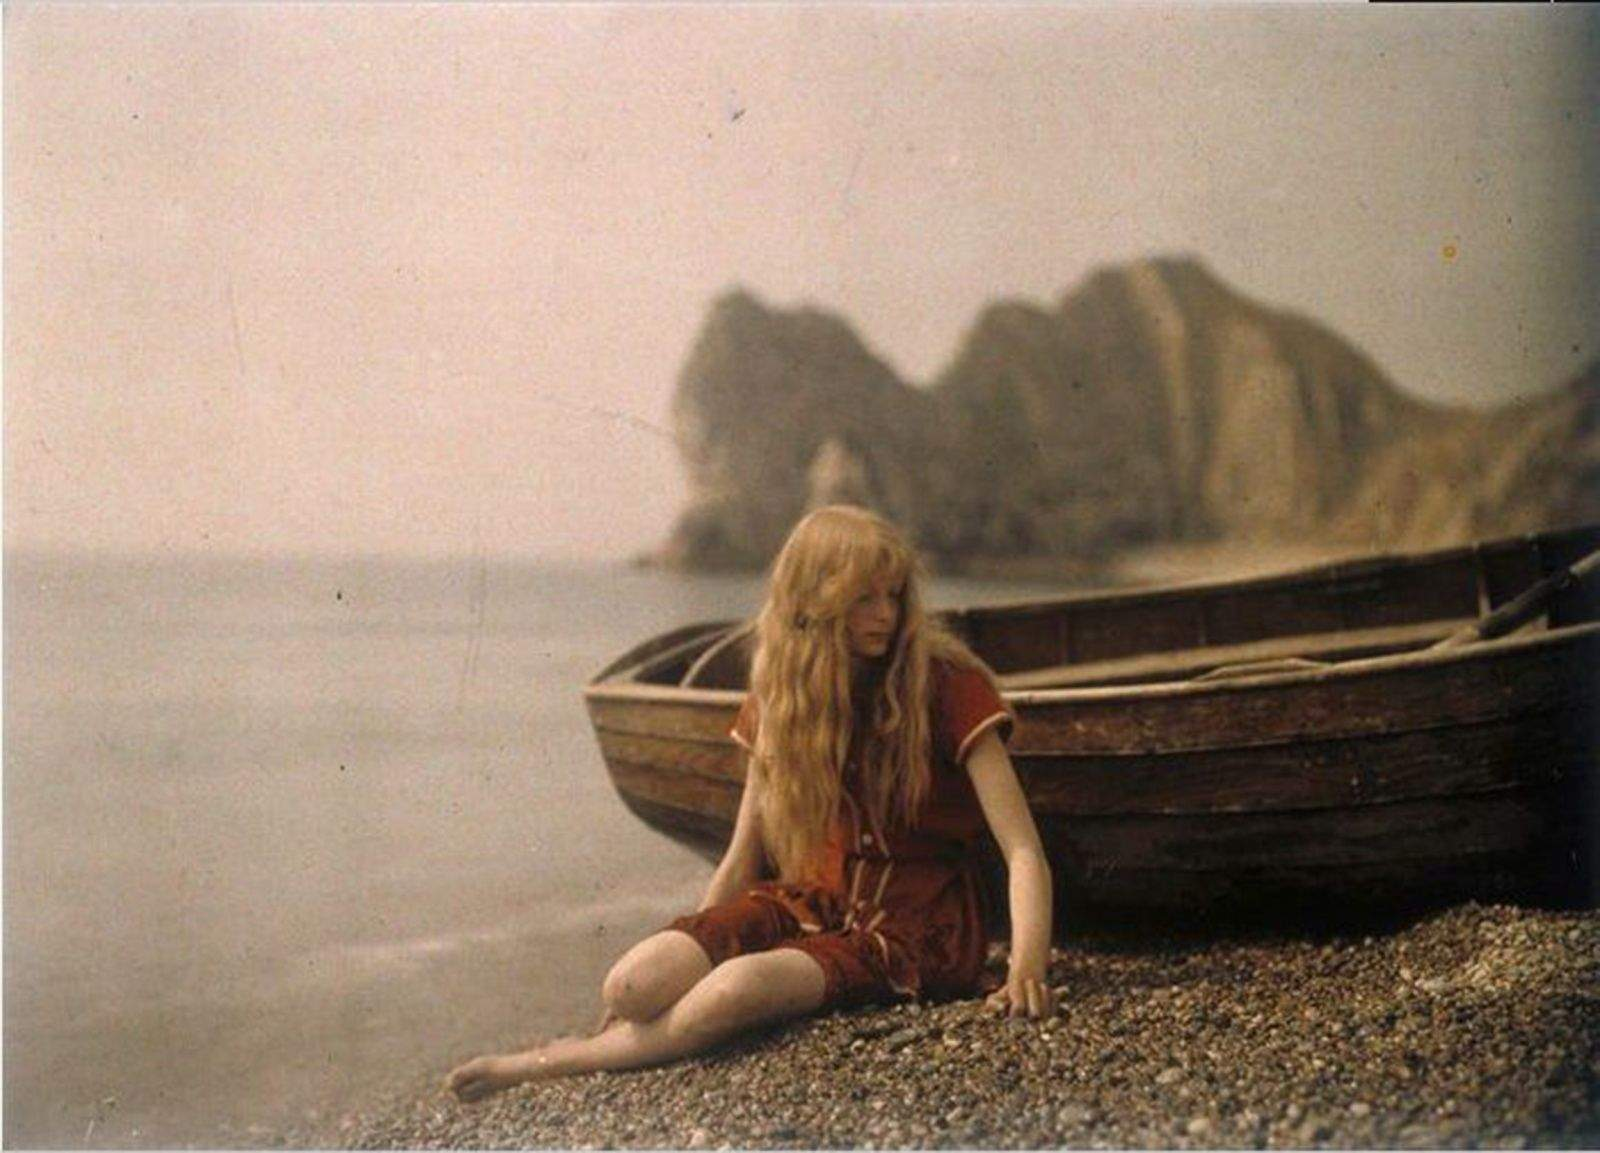 This photograph was made in the early 1900s using the Autochrome process, which starts with dyed potato starch.